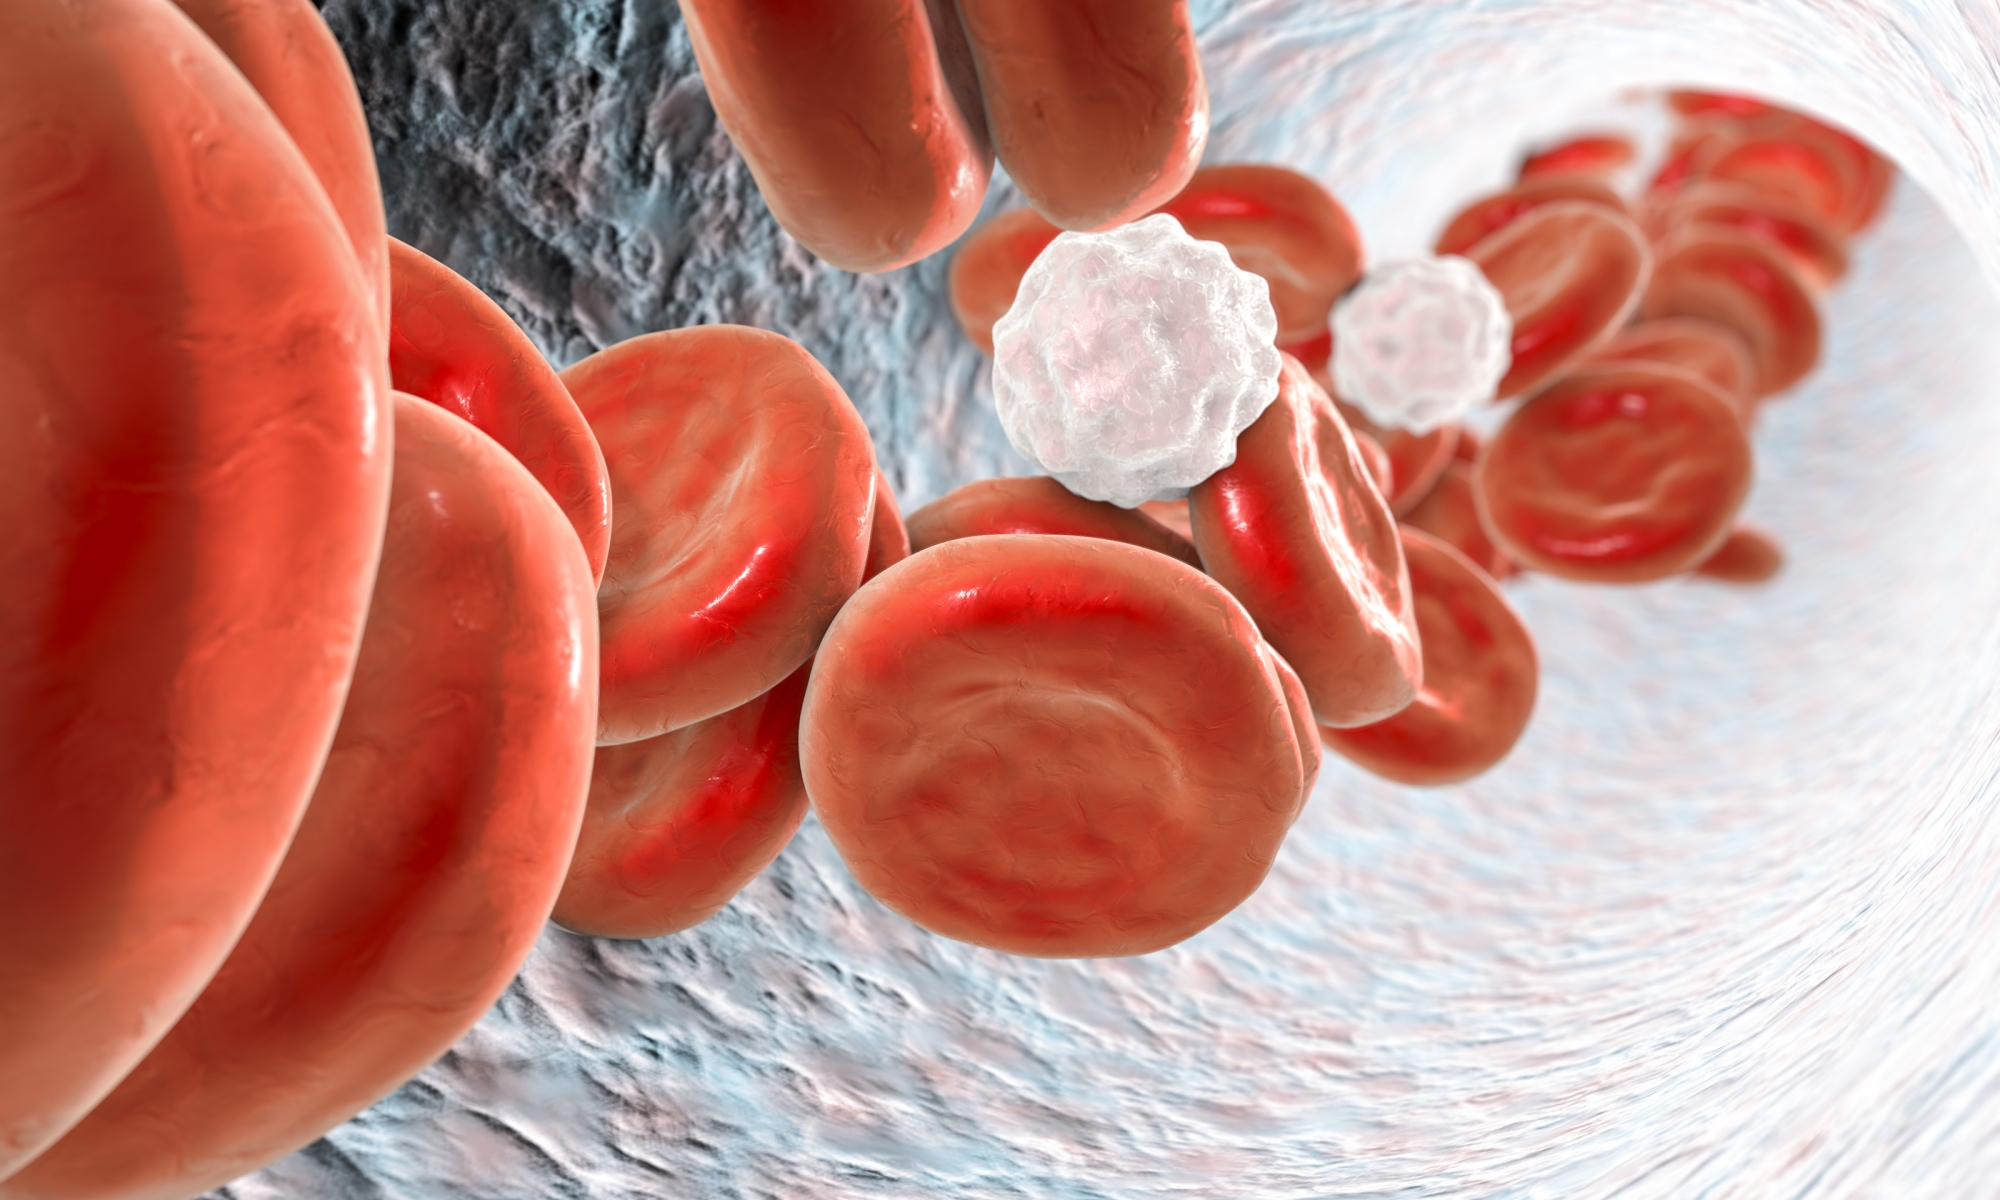 Inside blood vessel with red blood cells and white blood cells. 3D illustration